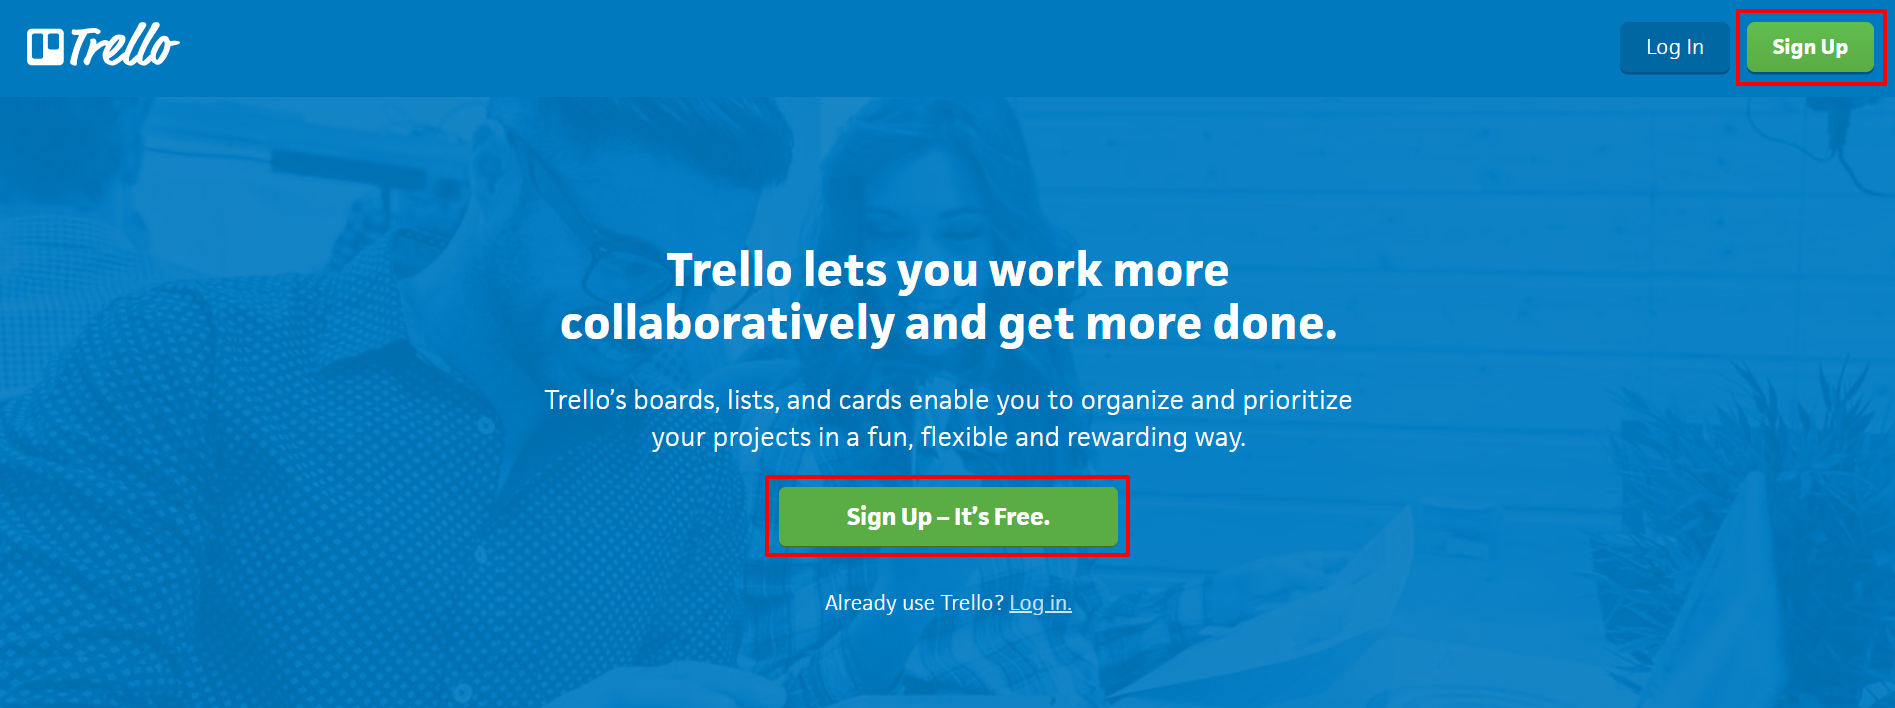 Trello homepage | HollyPryce.com